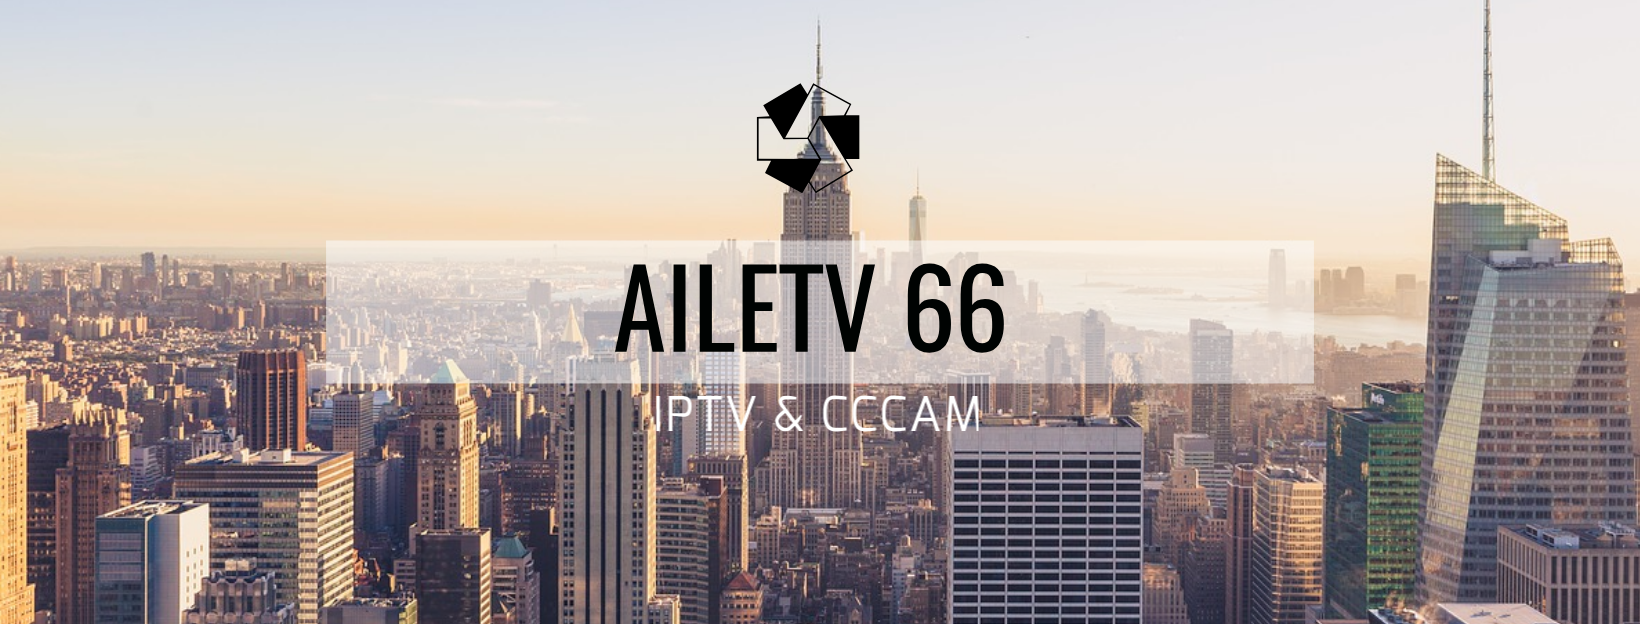 OCTAGON SF8008 - ailetv66